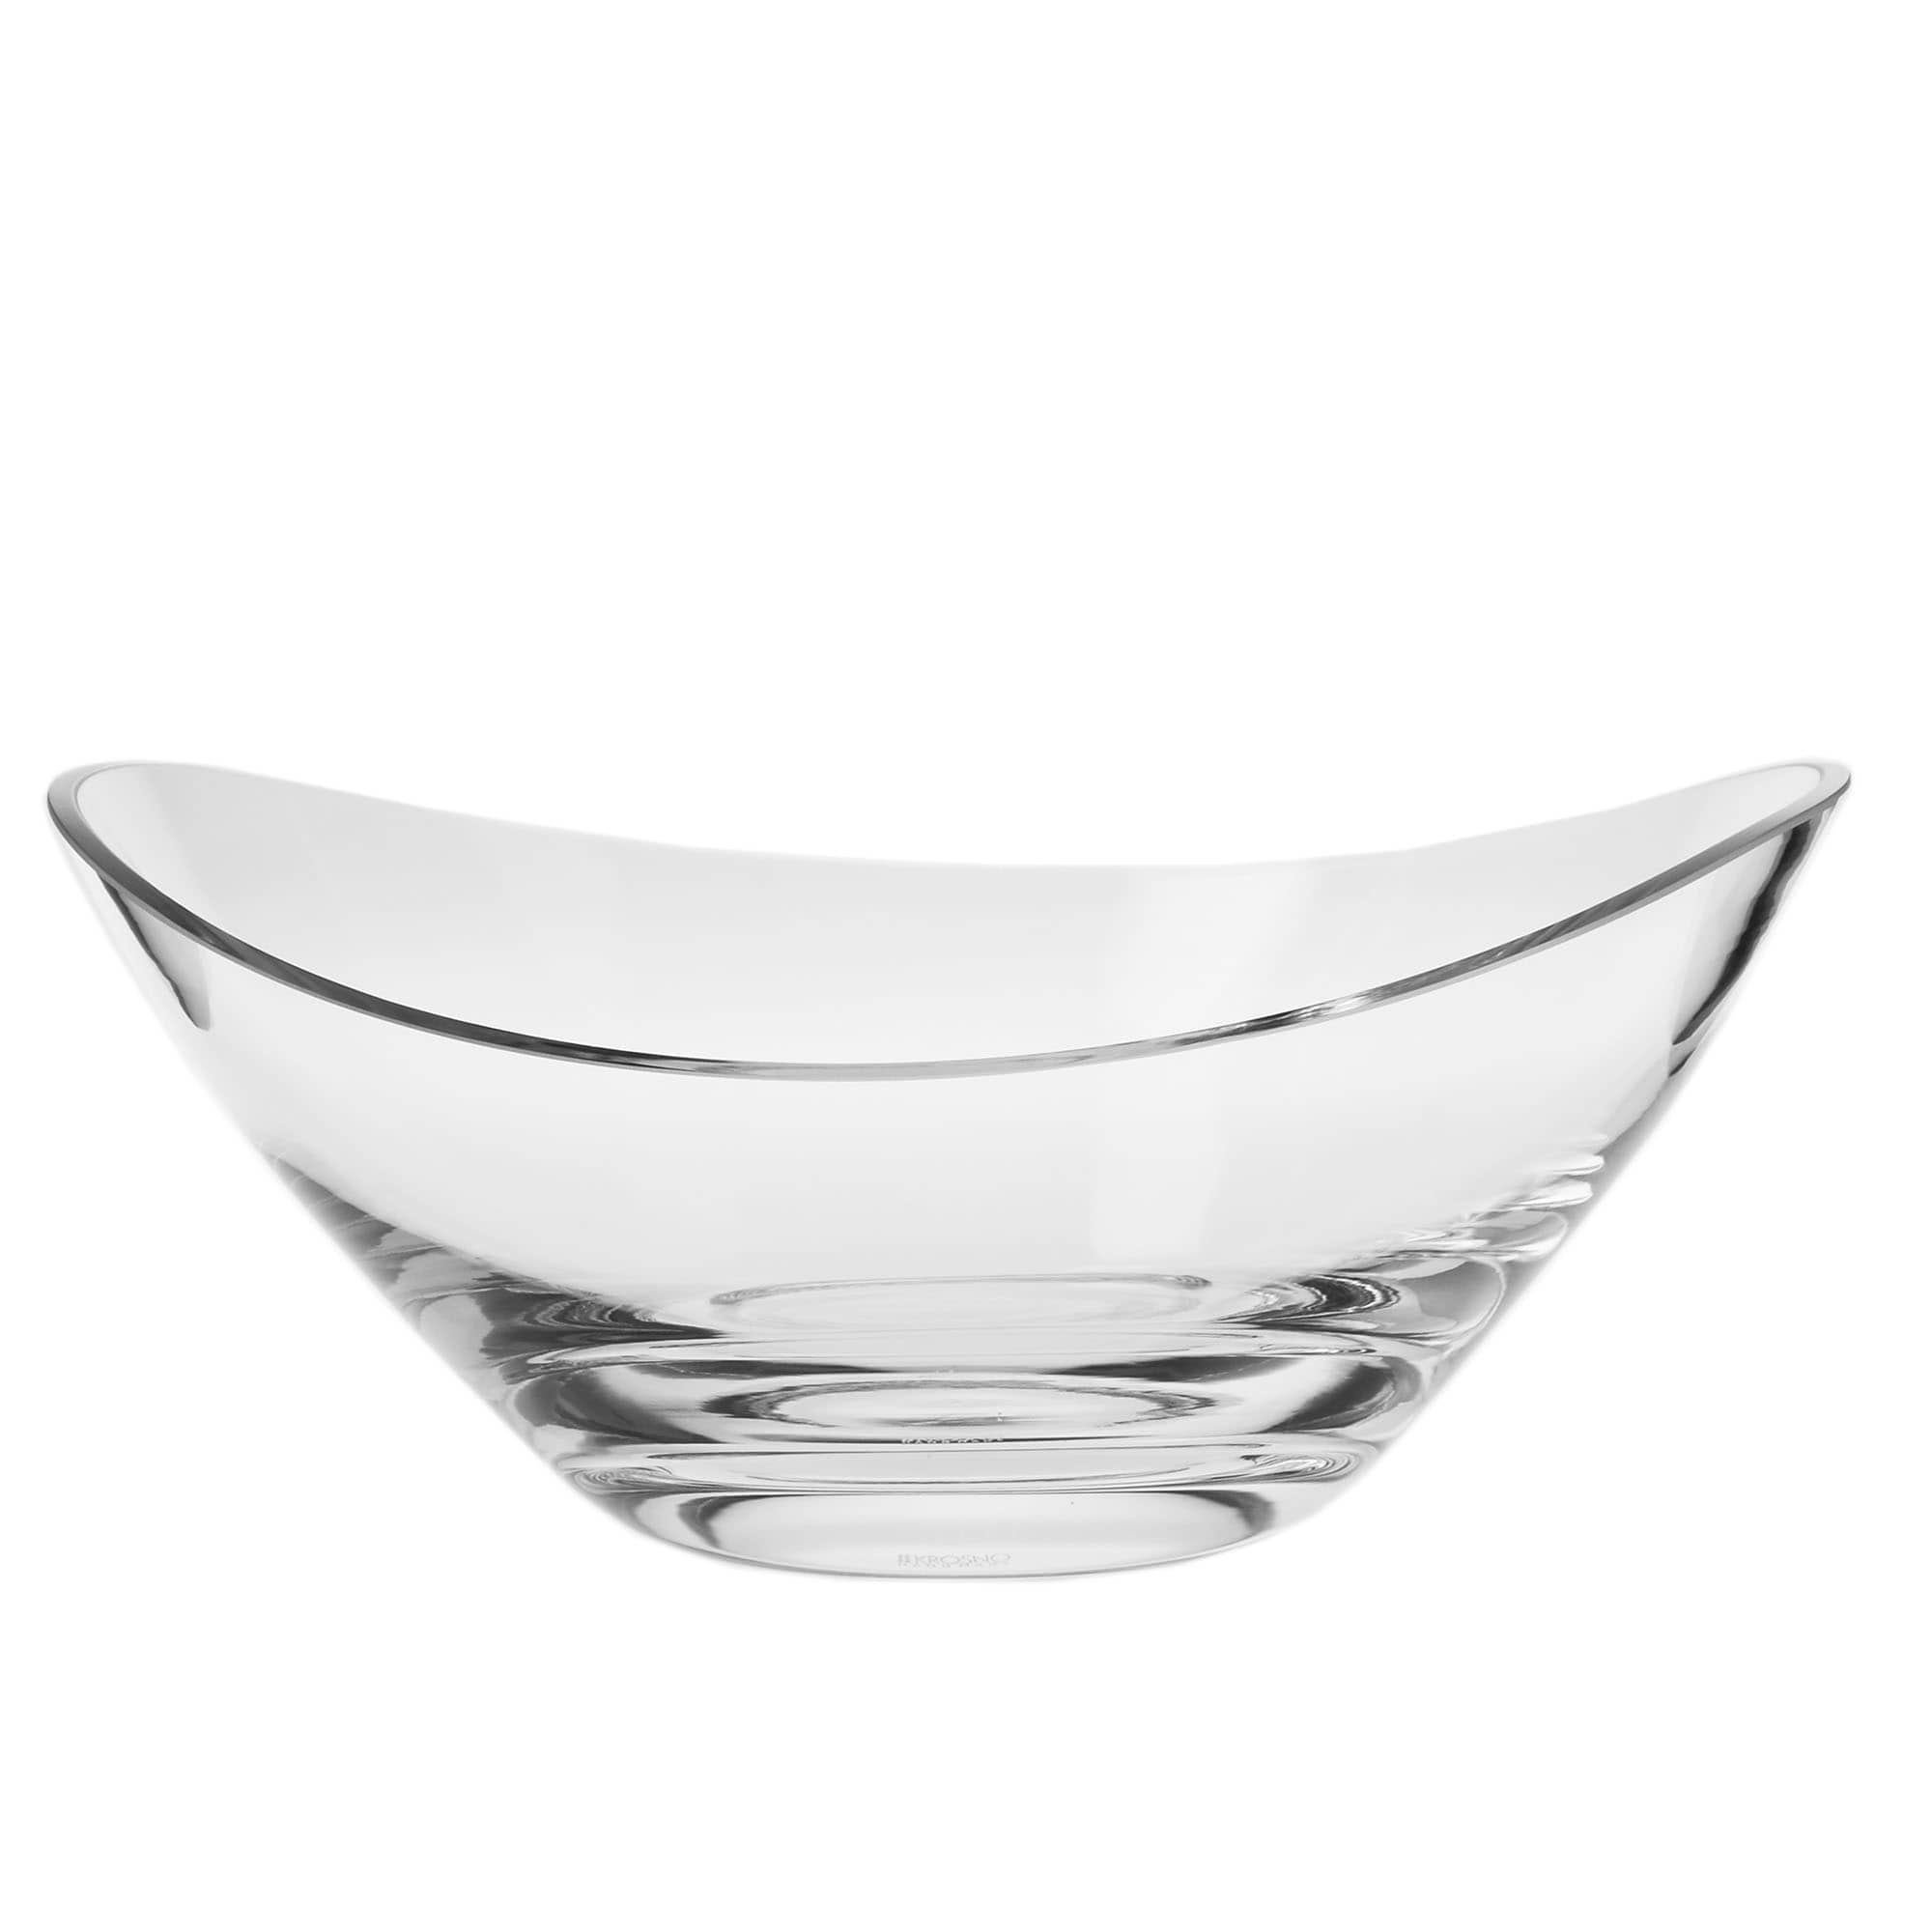 Decorative Glass Bowls Krosno Swoop Handmade Serving Bowl